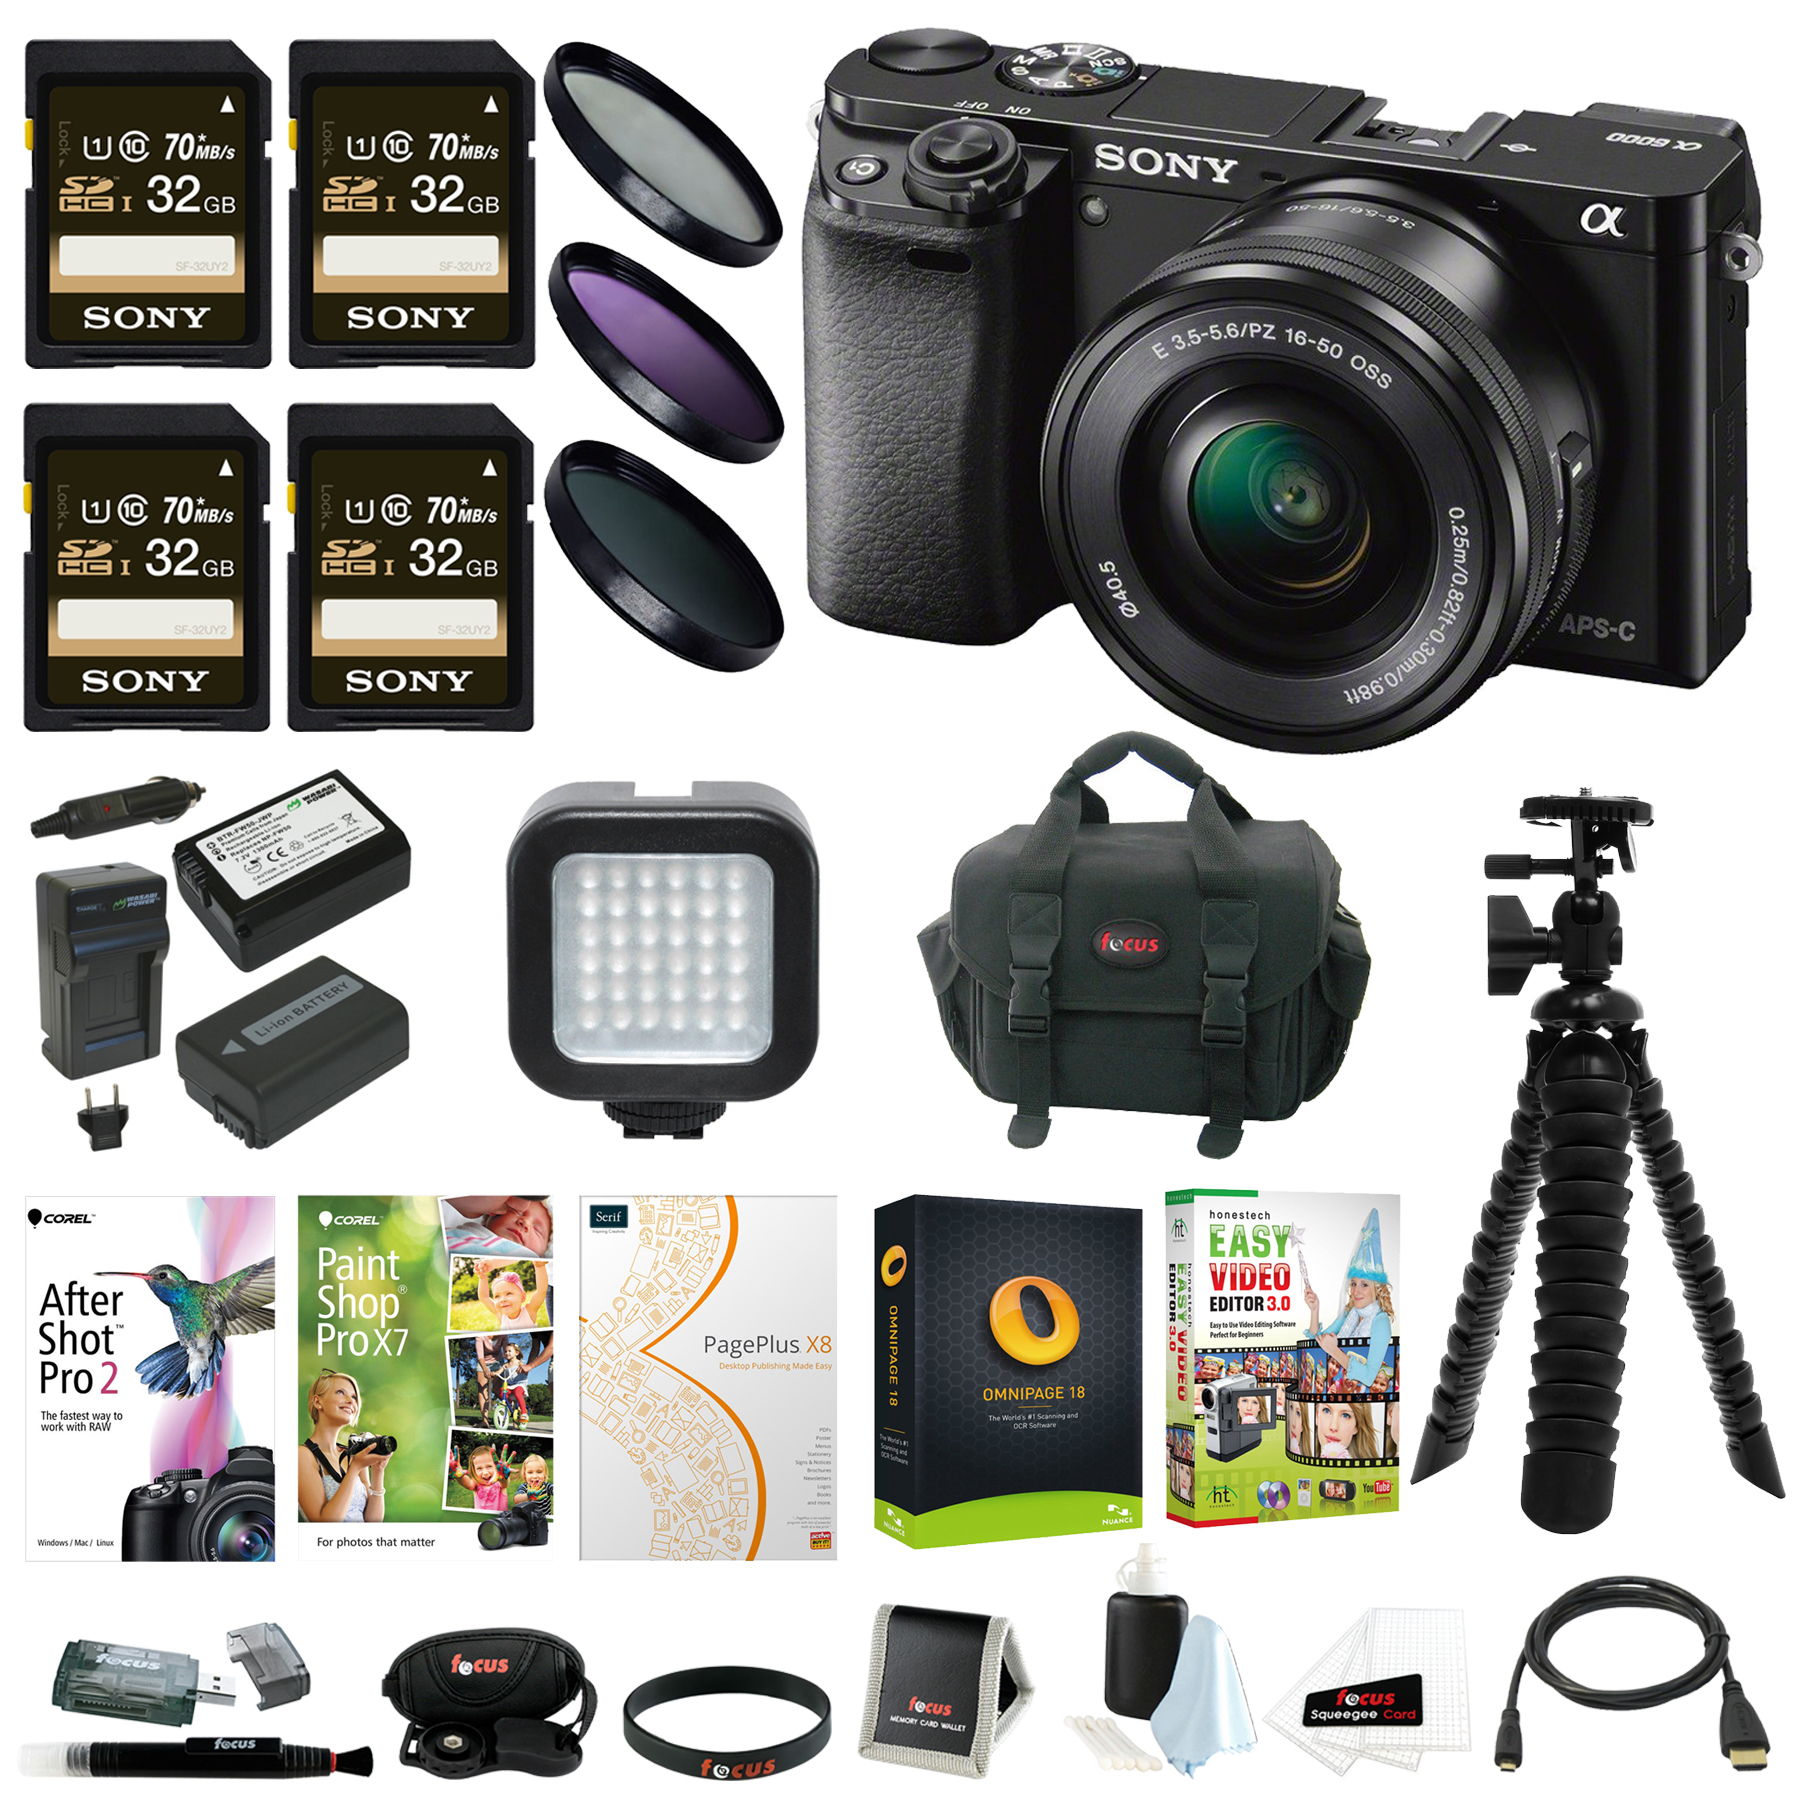 Sony a6000 Camera with 16-50mm Lens (Black) + Creative & Office Software Suite + Accessory Bundle